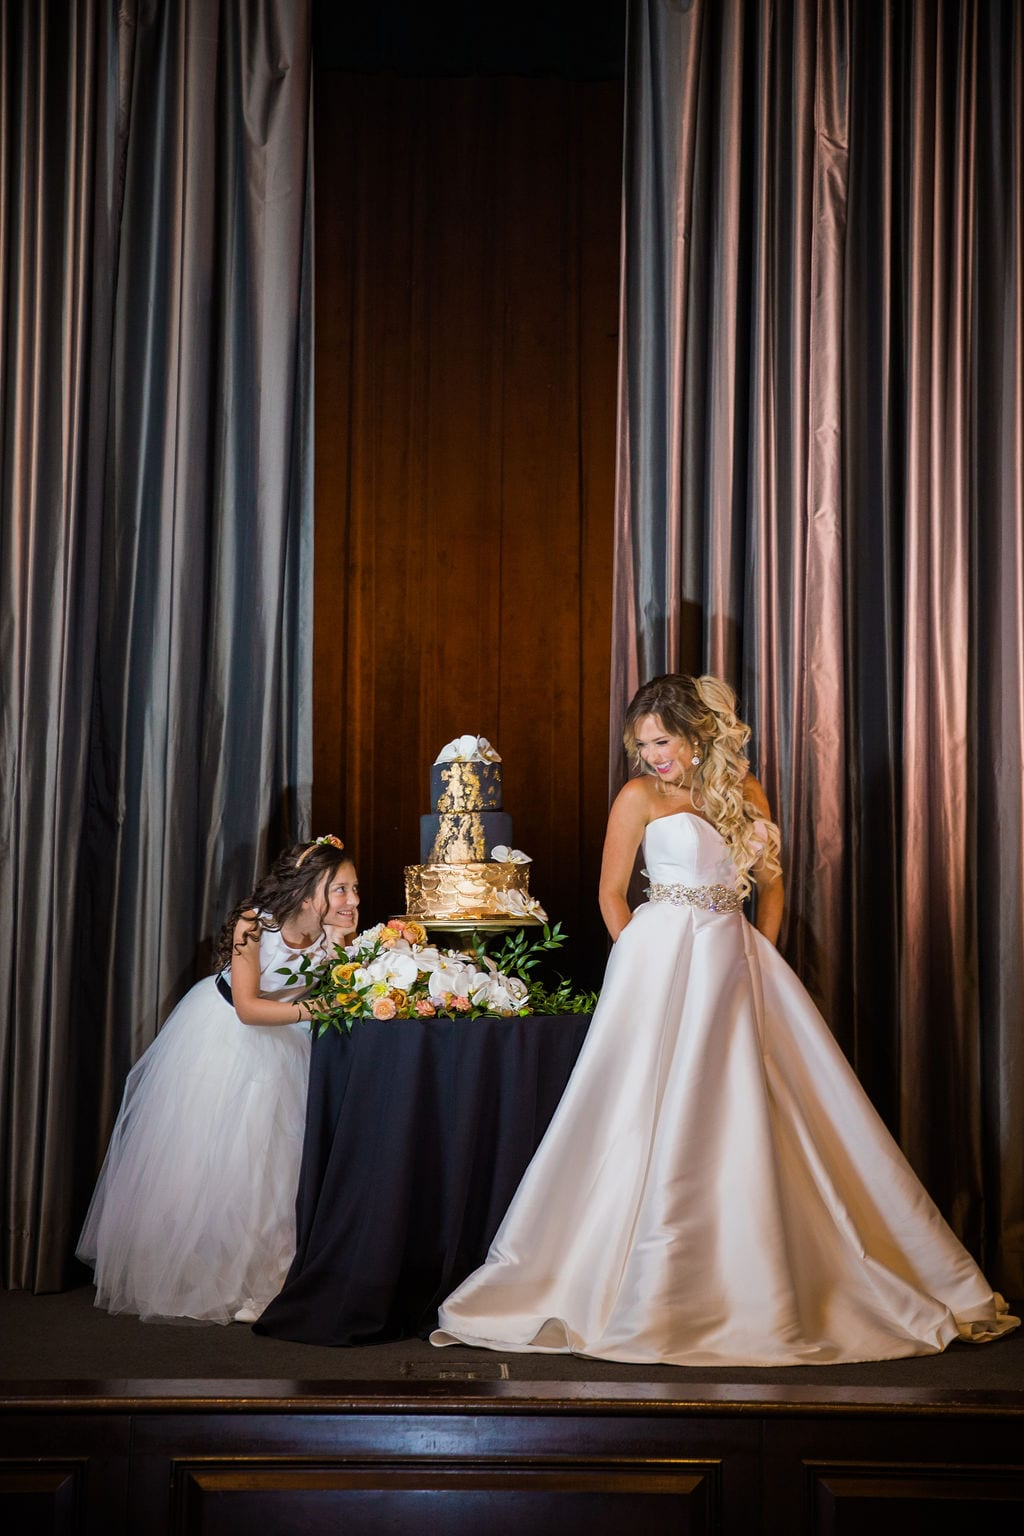 St Anthony Styled wedding cake with bride and flower girl